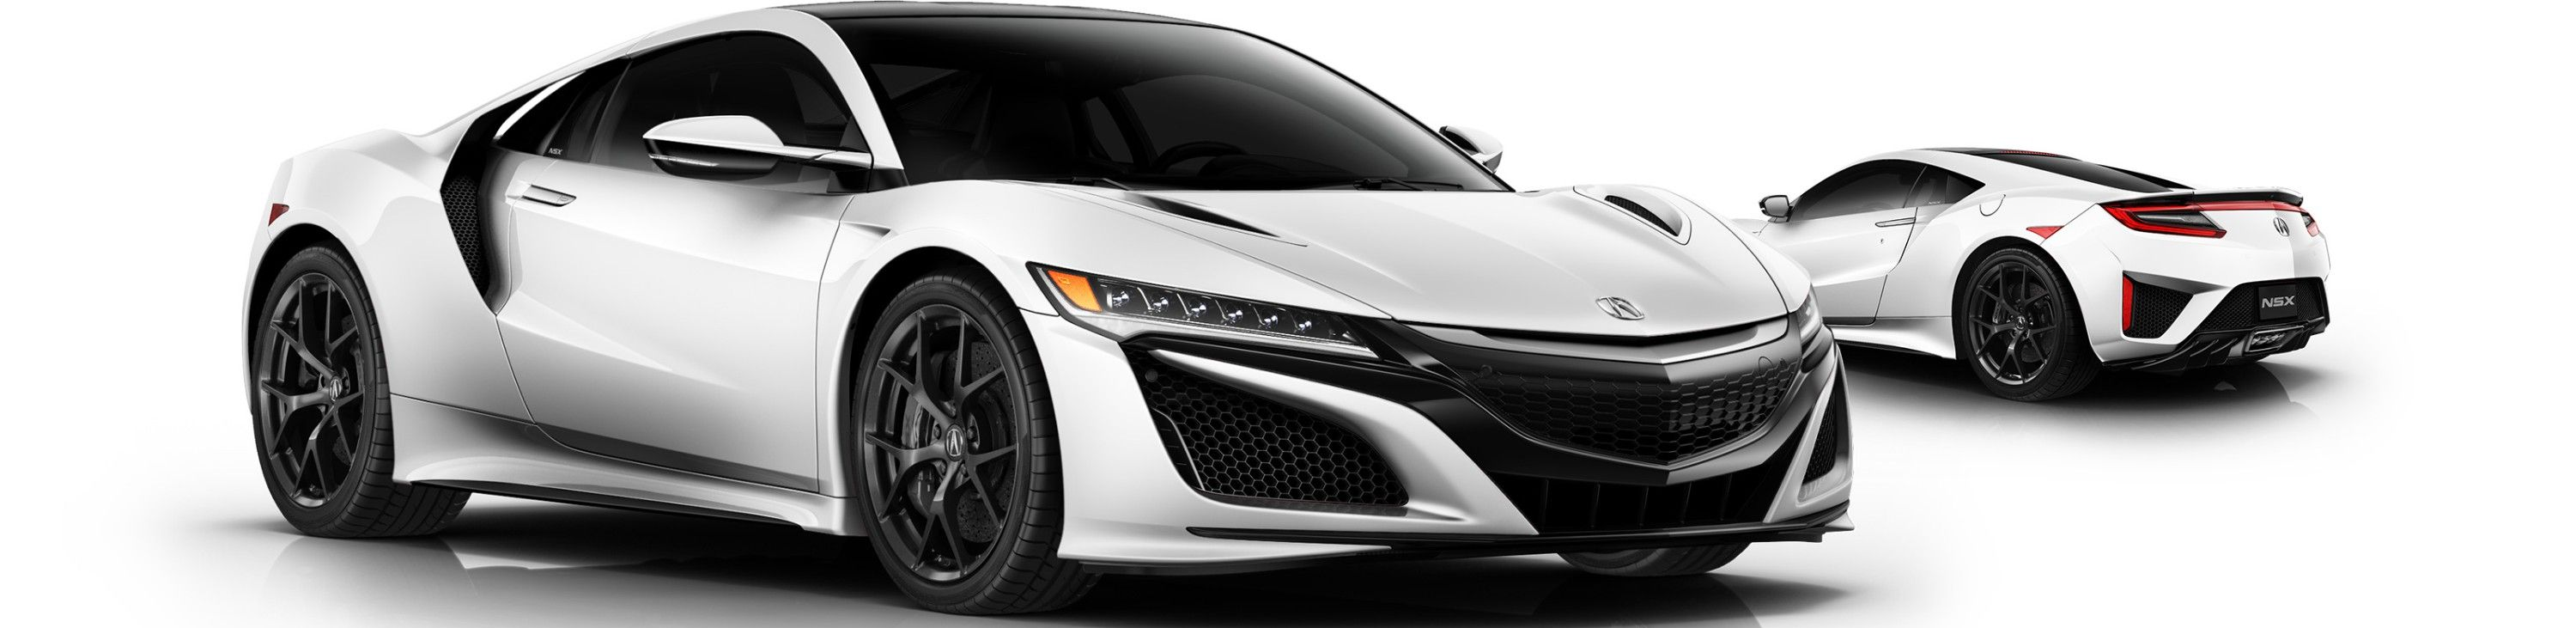 2017 acura nsx for sale in chantilly va